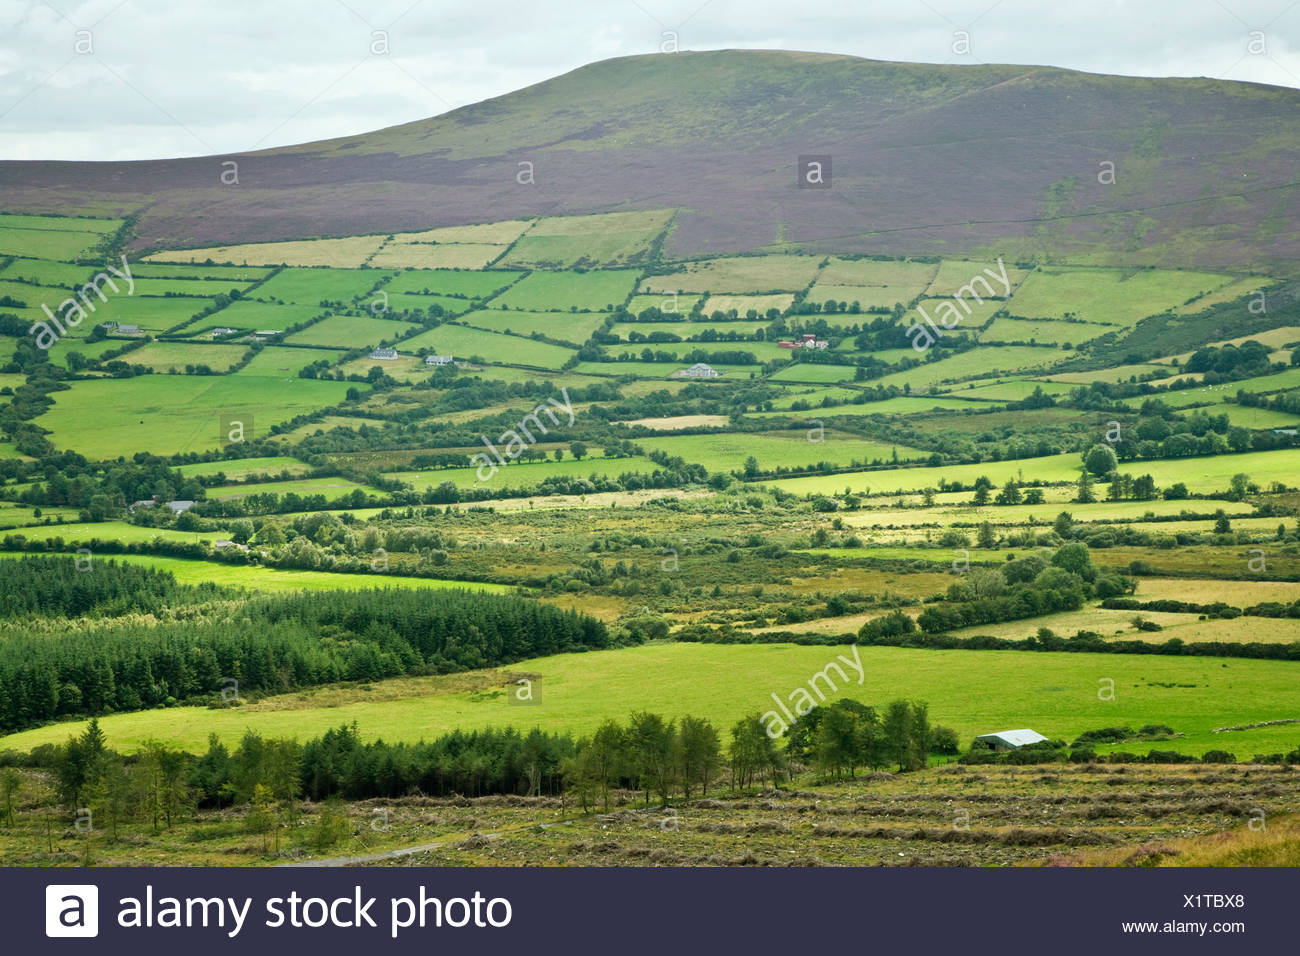 Republic of Ireland, County Carlow, Mount Leinster overlooking countryside - Stock Image